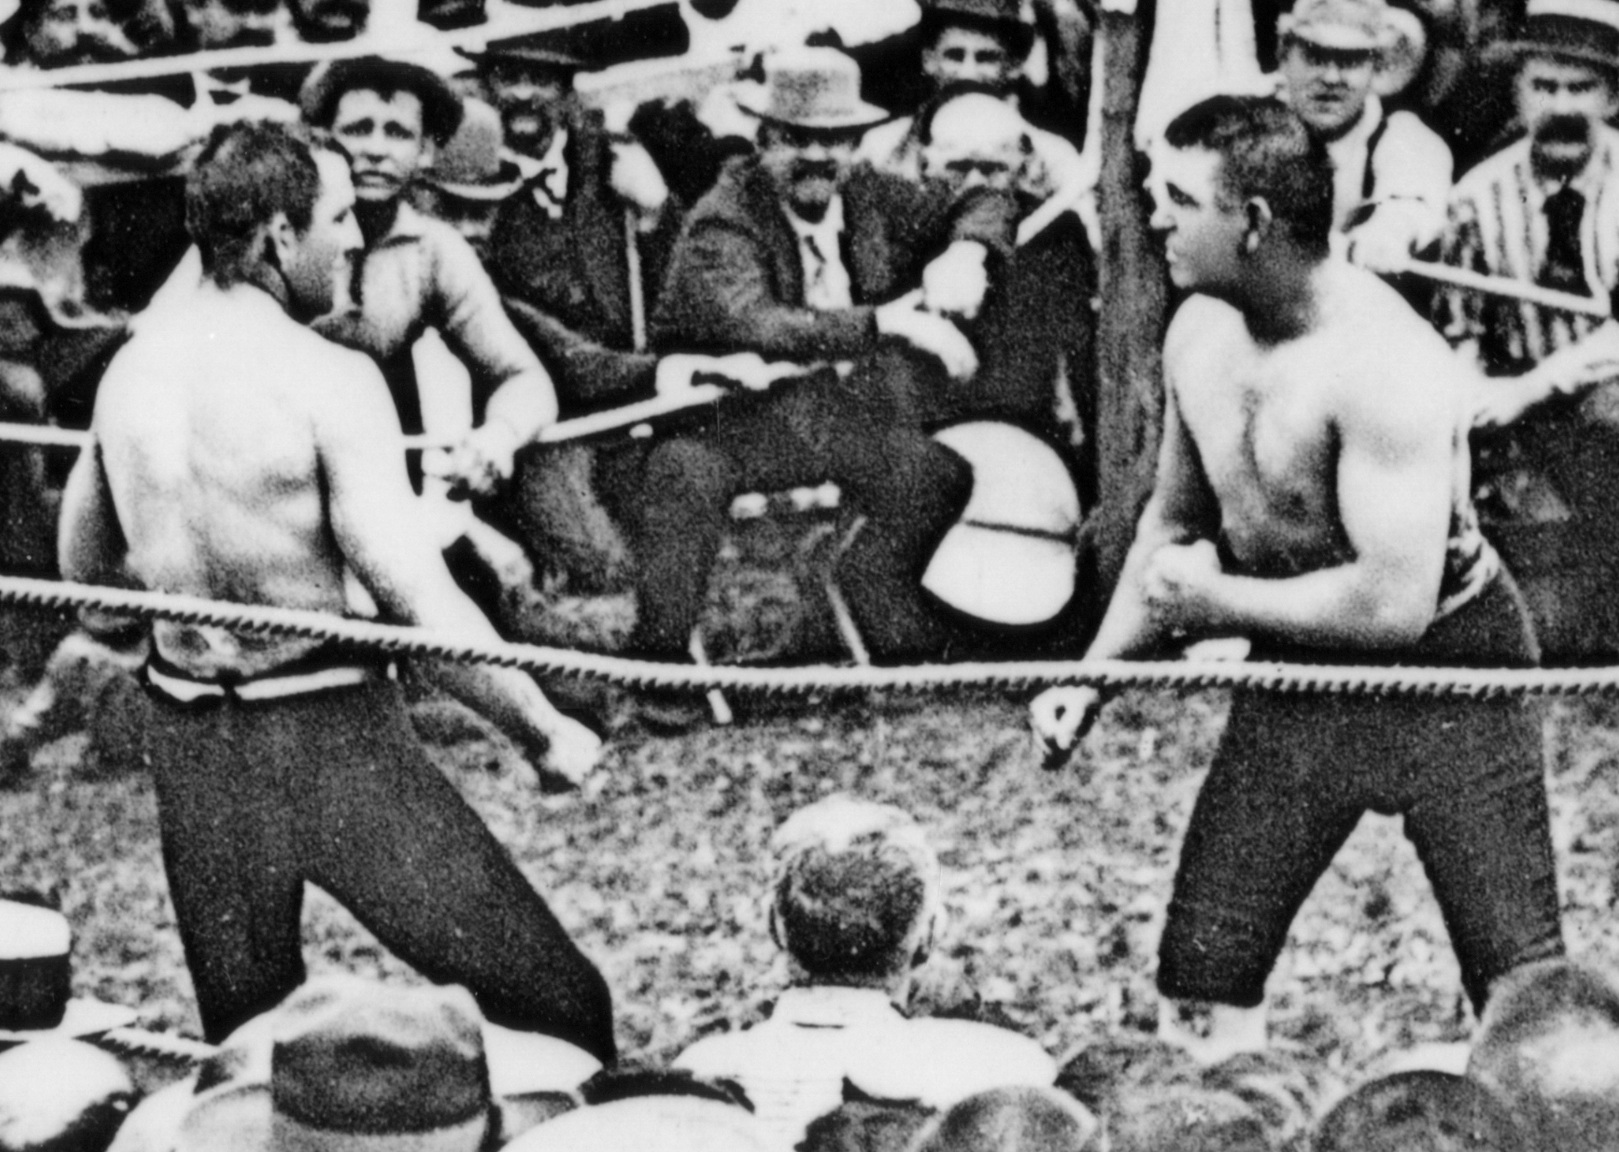 Last Bare Knuckles Fight of Champions, Jake Kilrain vs John L Sullivan